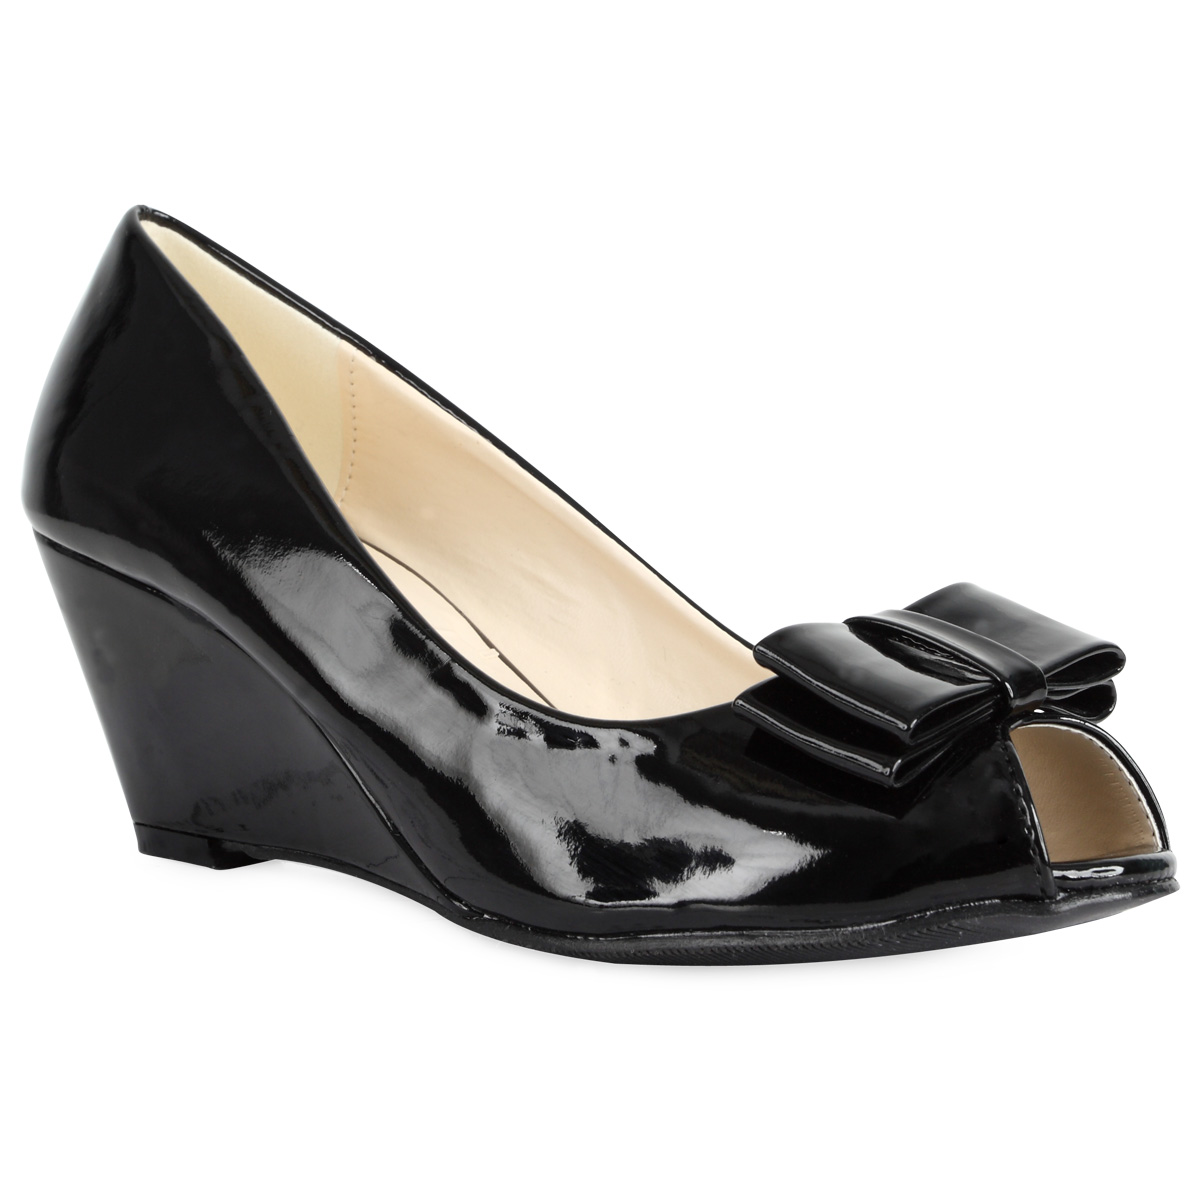 Black Patent Peeptoe Court Shoes